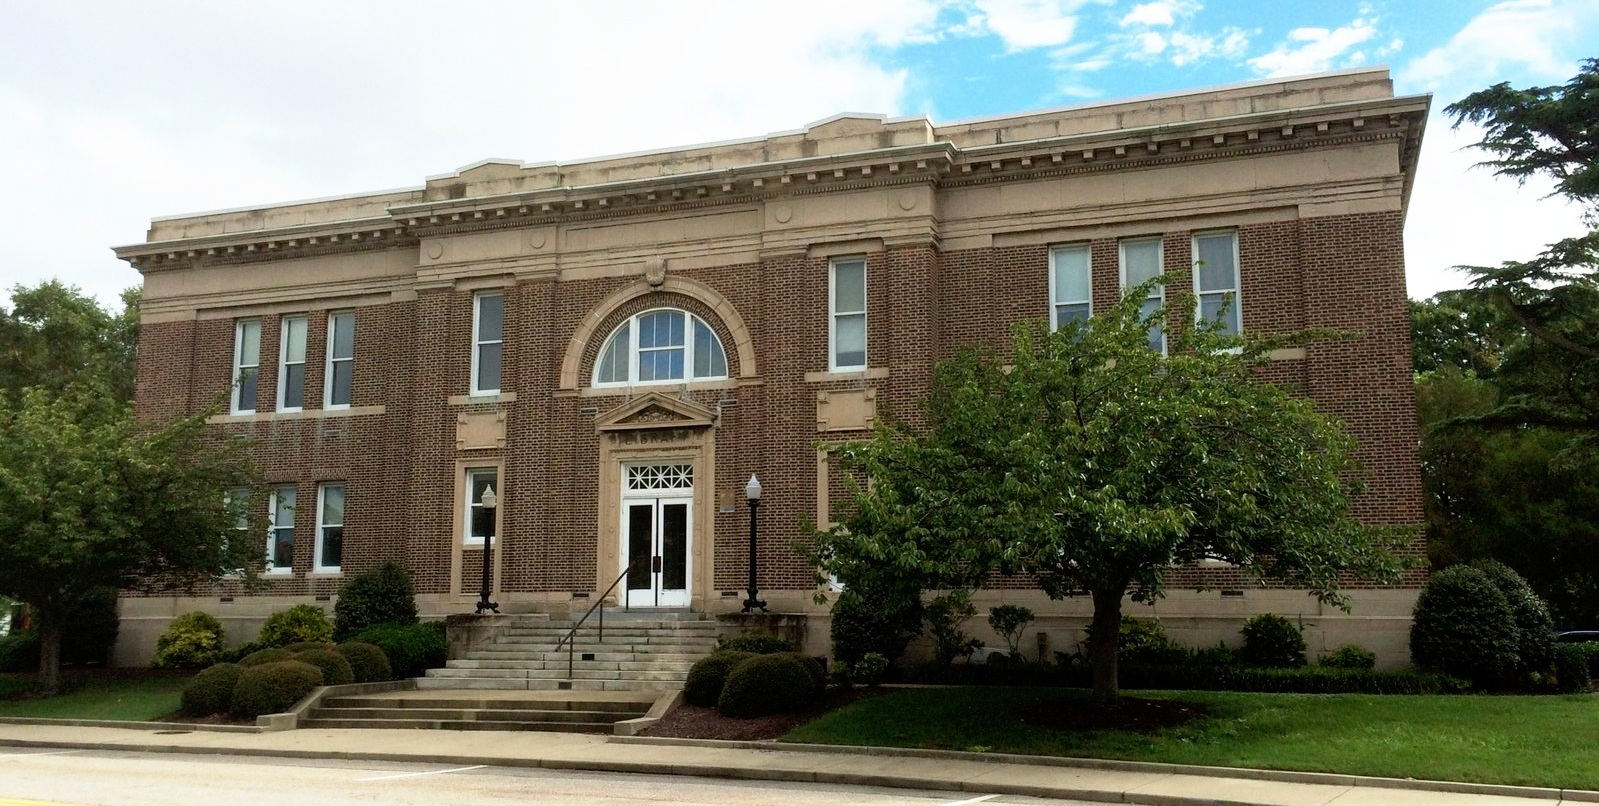 Original 1909 library building